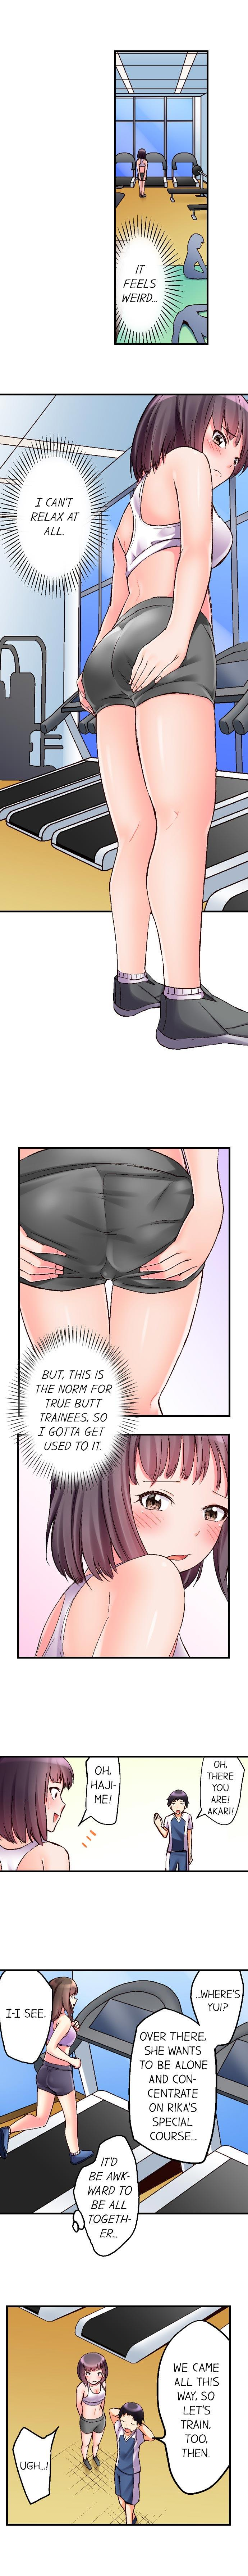 No Panty Booty Workout! Ch. 1 - 15 86